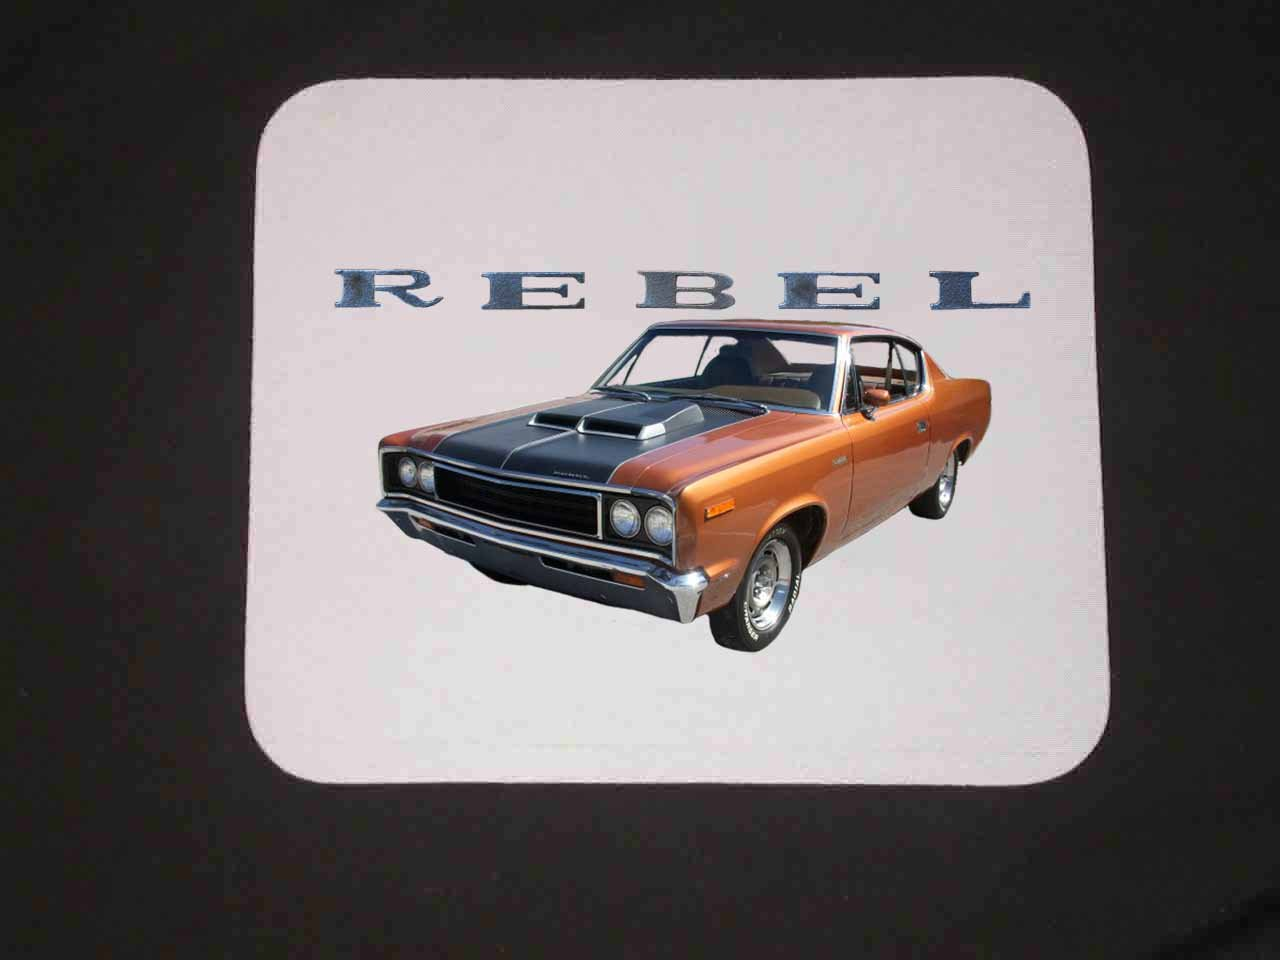 New 1970 AMC Rebel Mousepad!